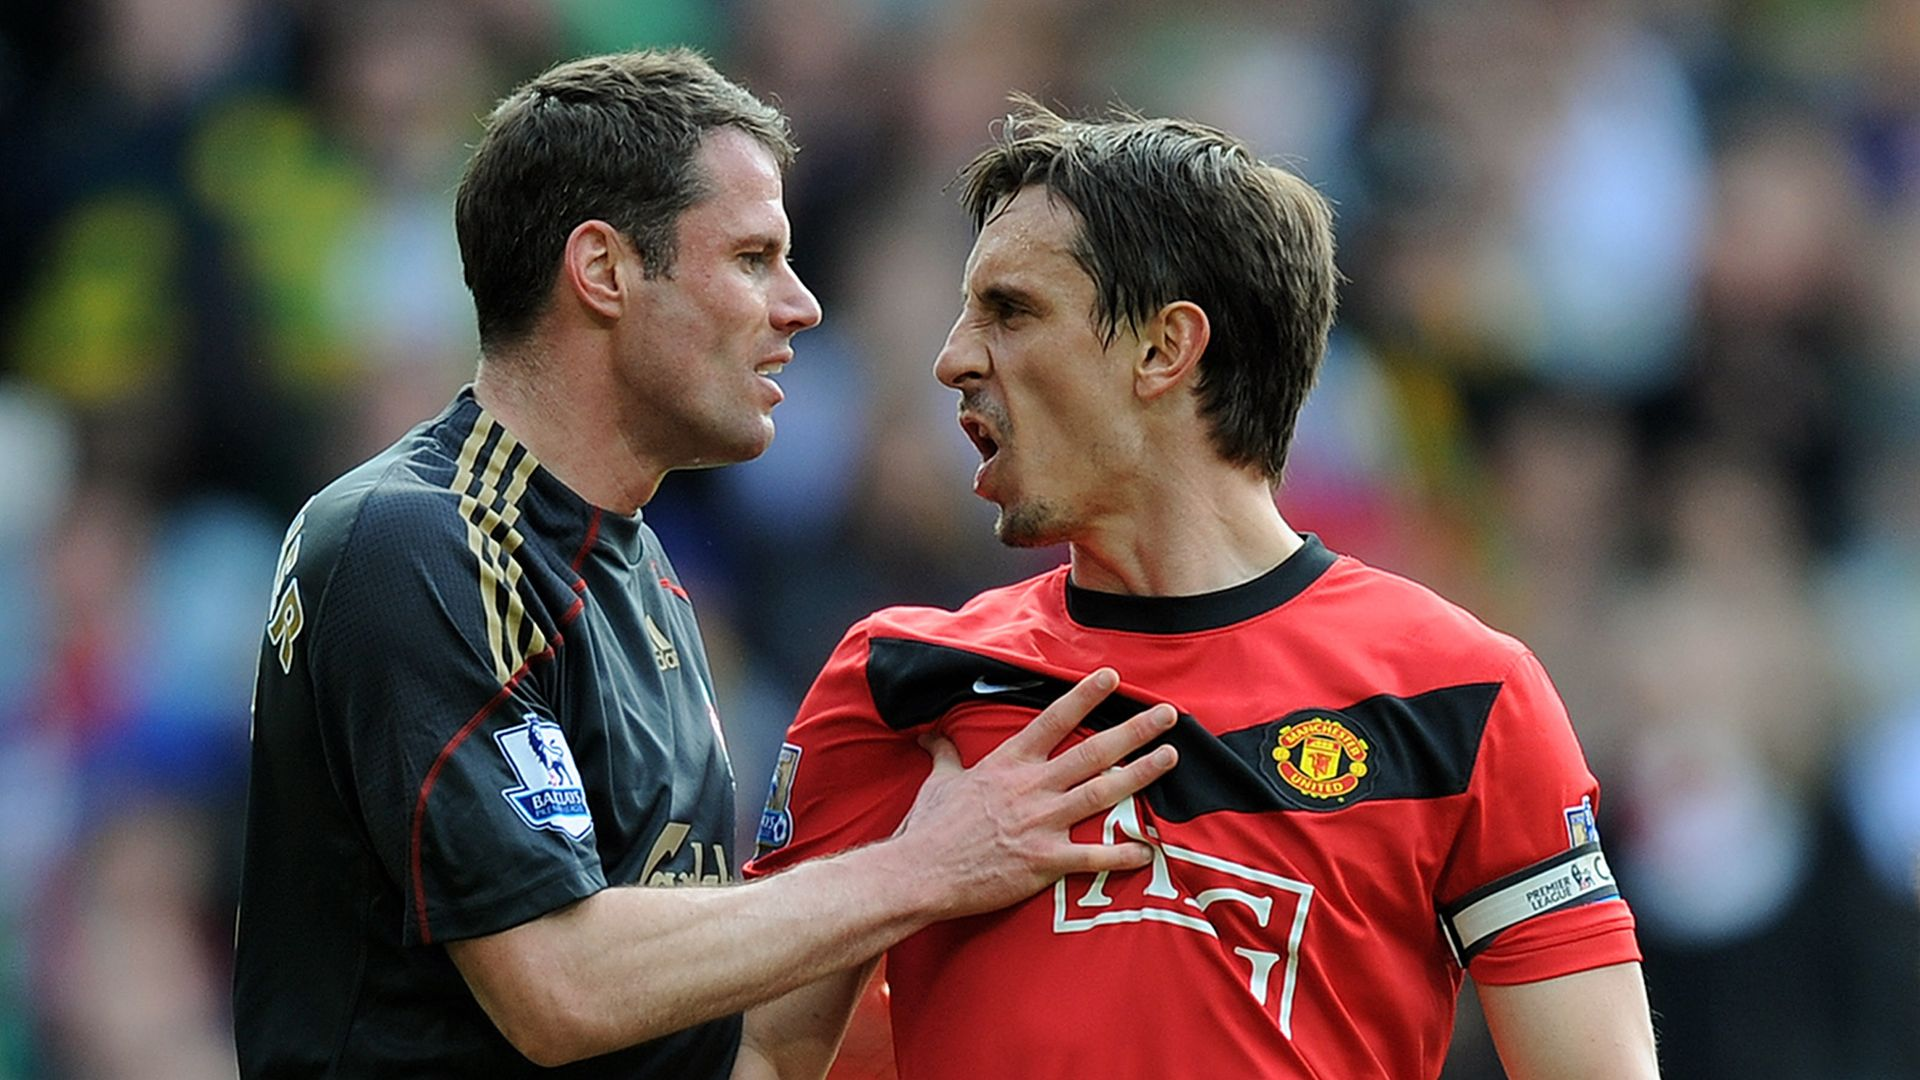 Football room-mates - Carra, Nev and more